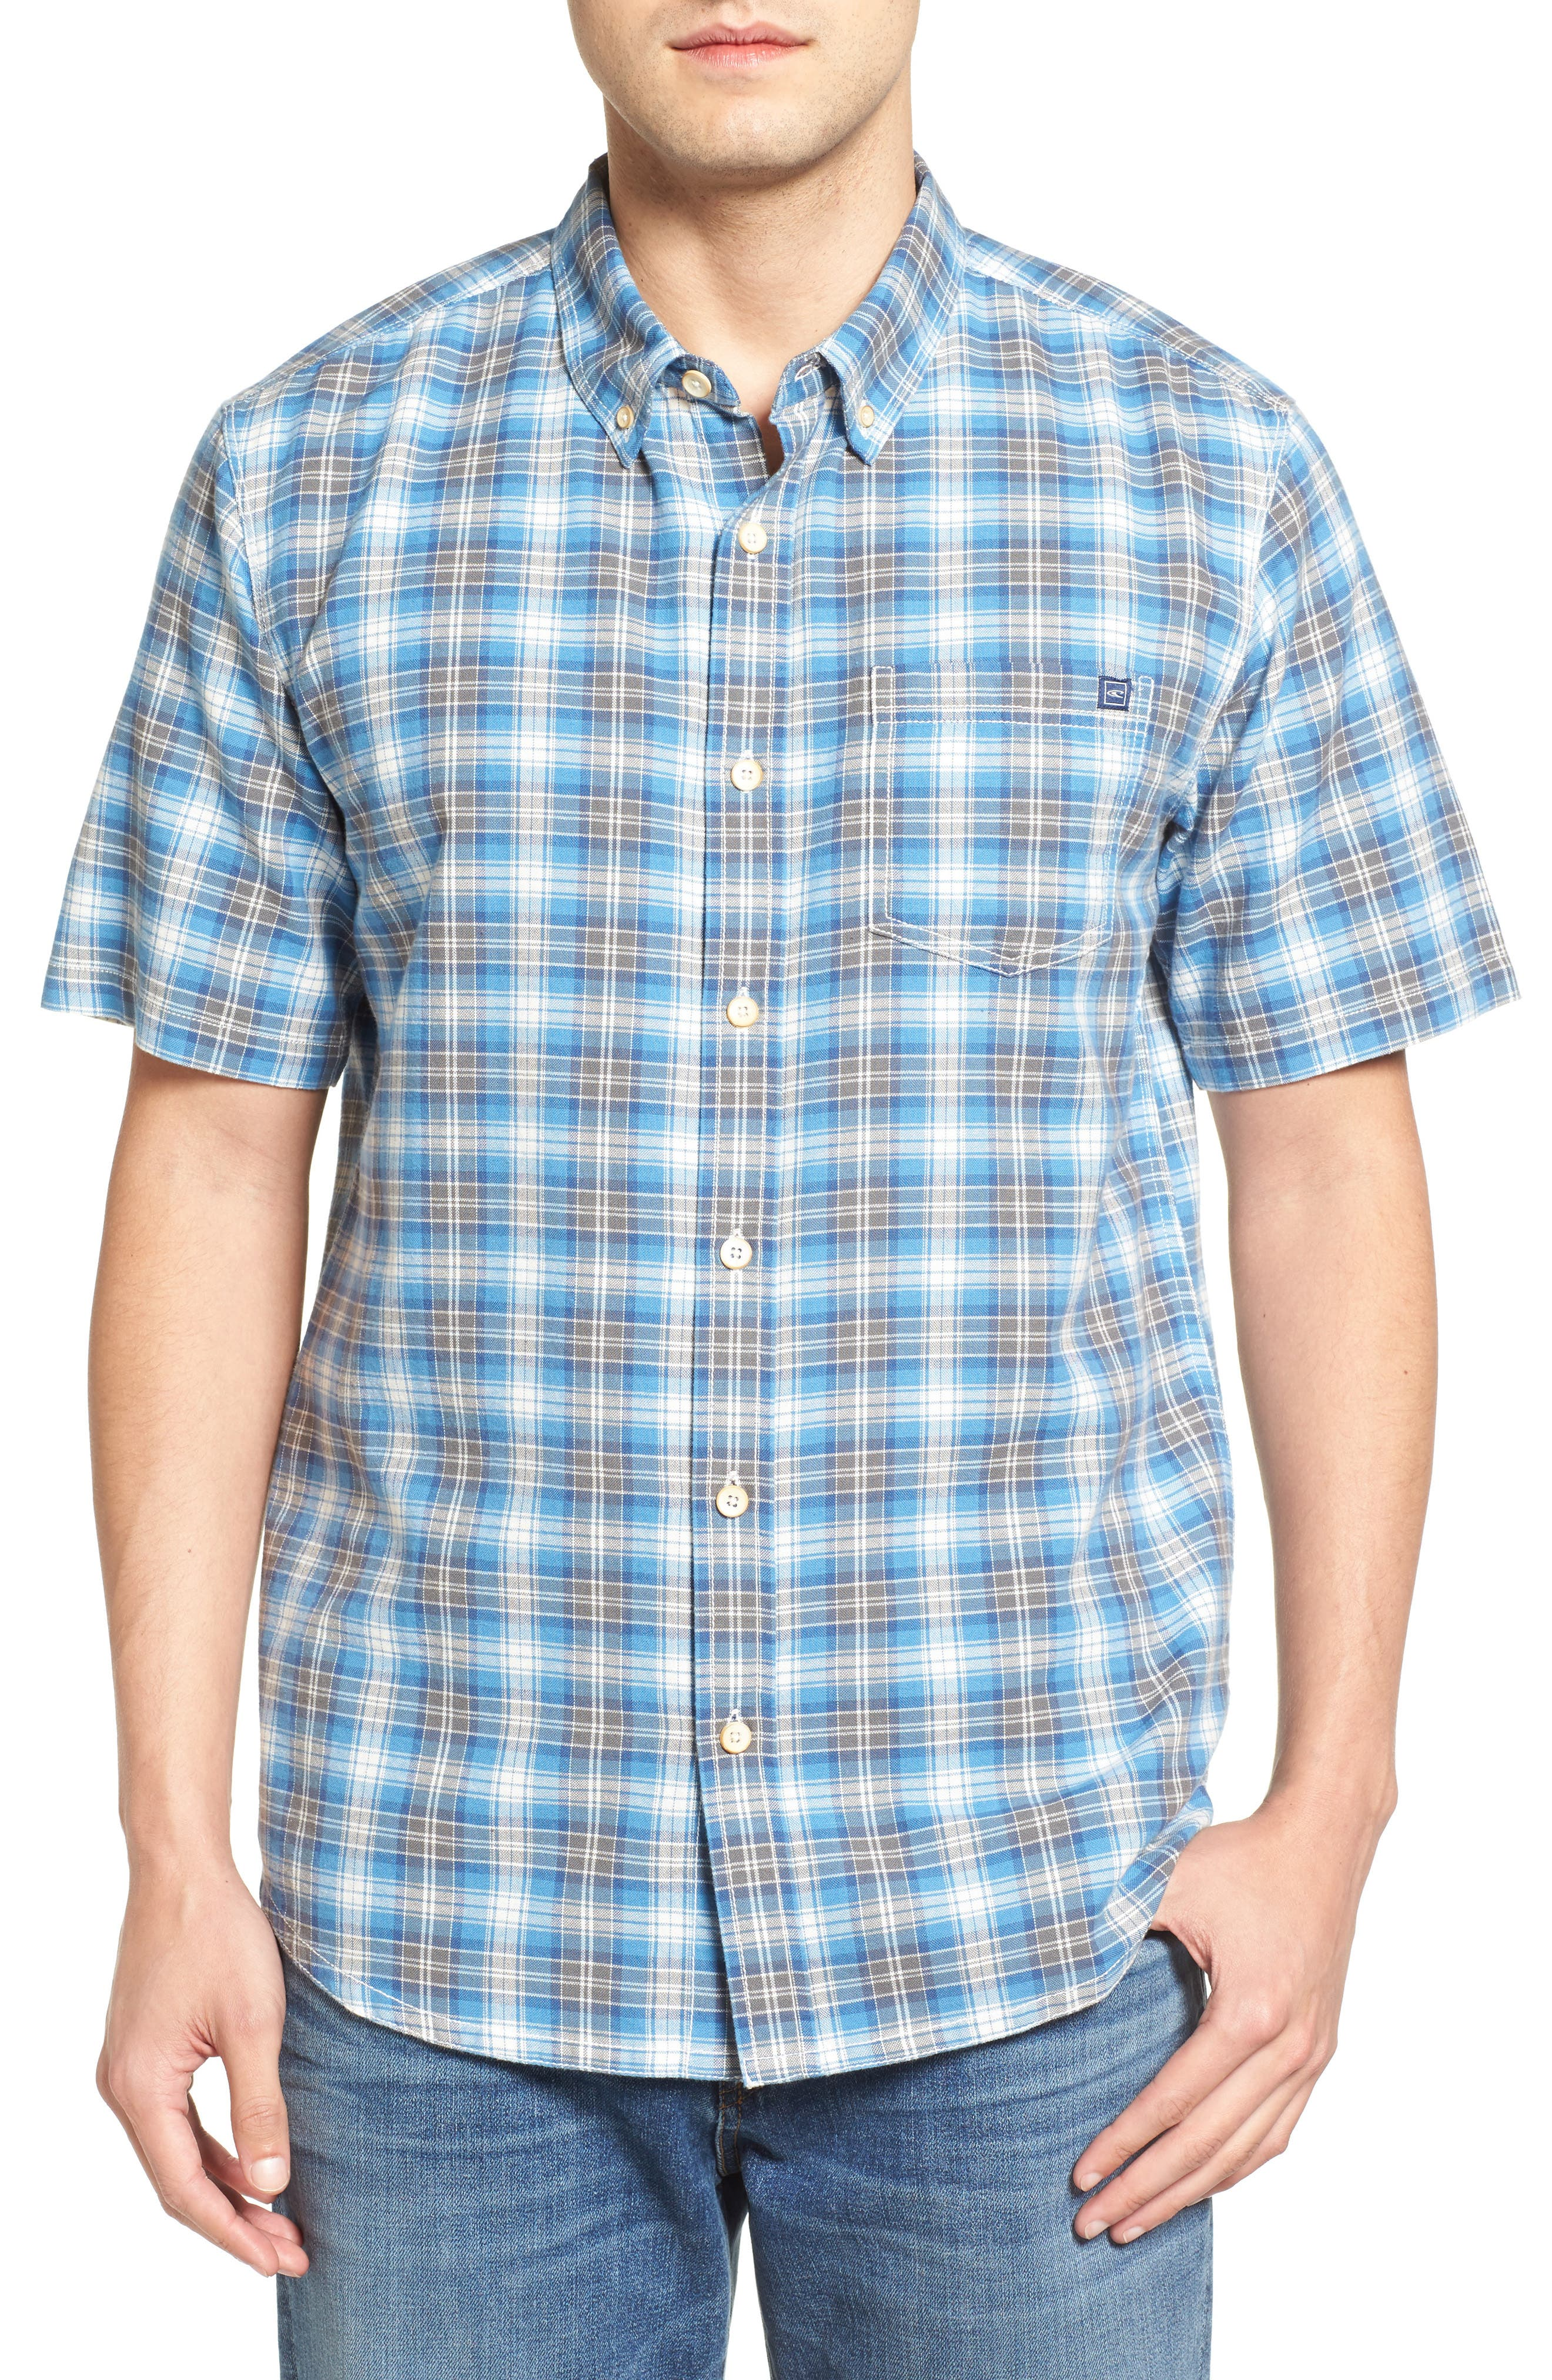 Voyager Plaid Sport Shirt,                             Main thumbnail 2, color,